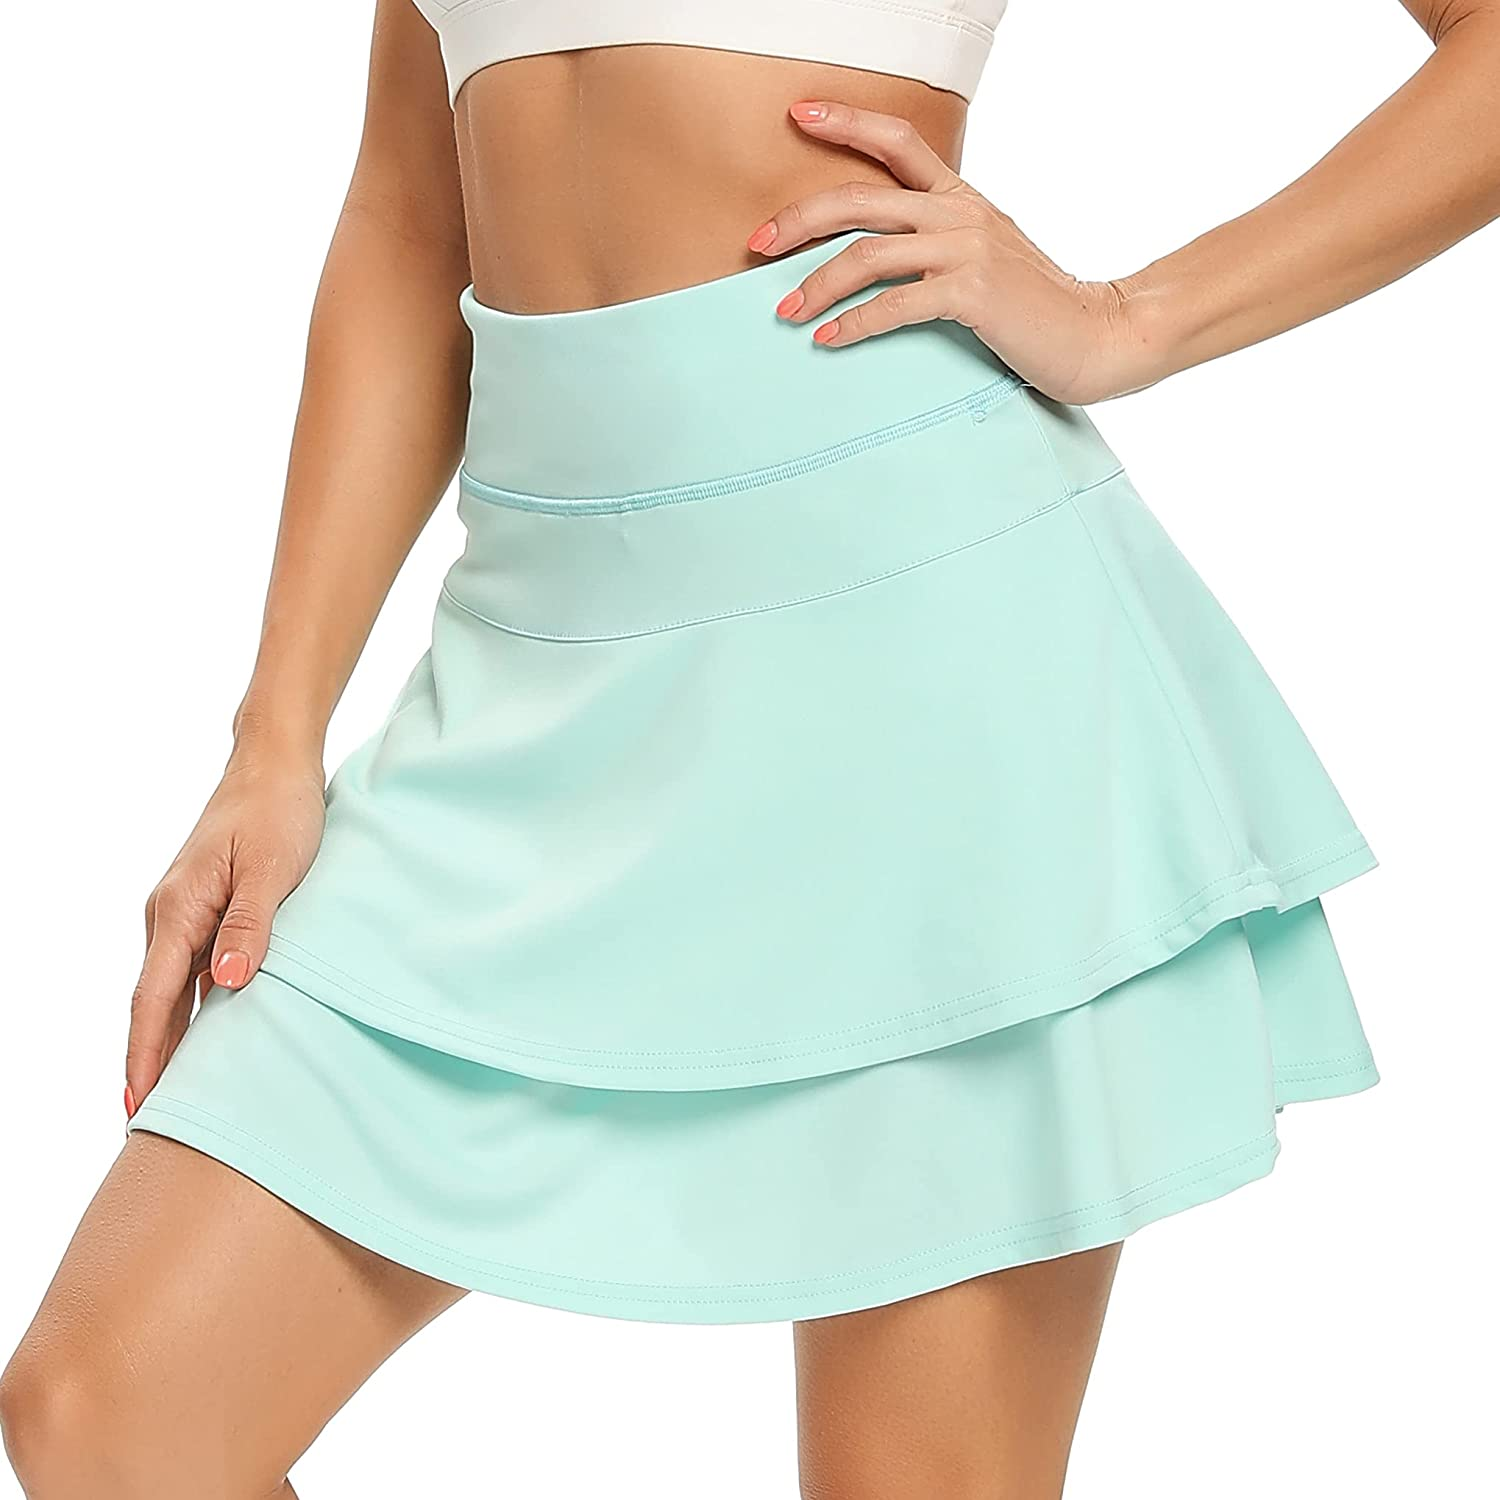 WOWENY Women's Cheap sale Active Skort Athletic Ruffle Pleated Tennis Manufacturer OFFicial shop Skirt